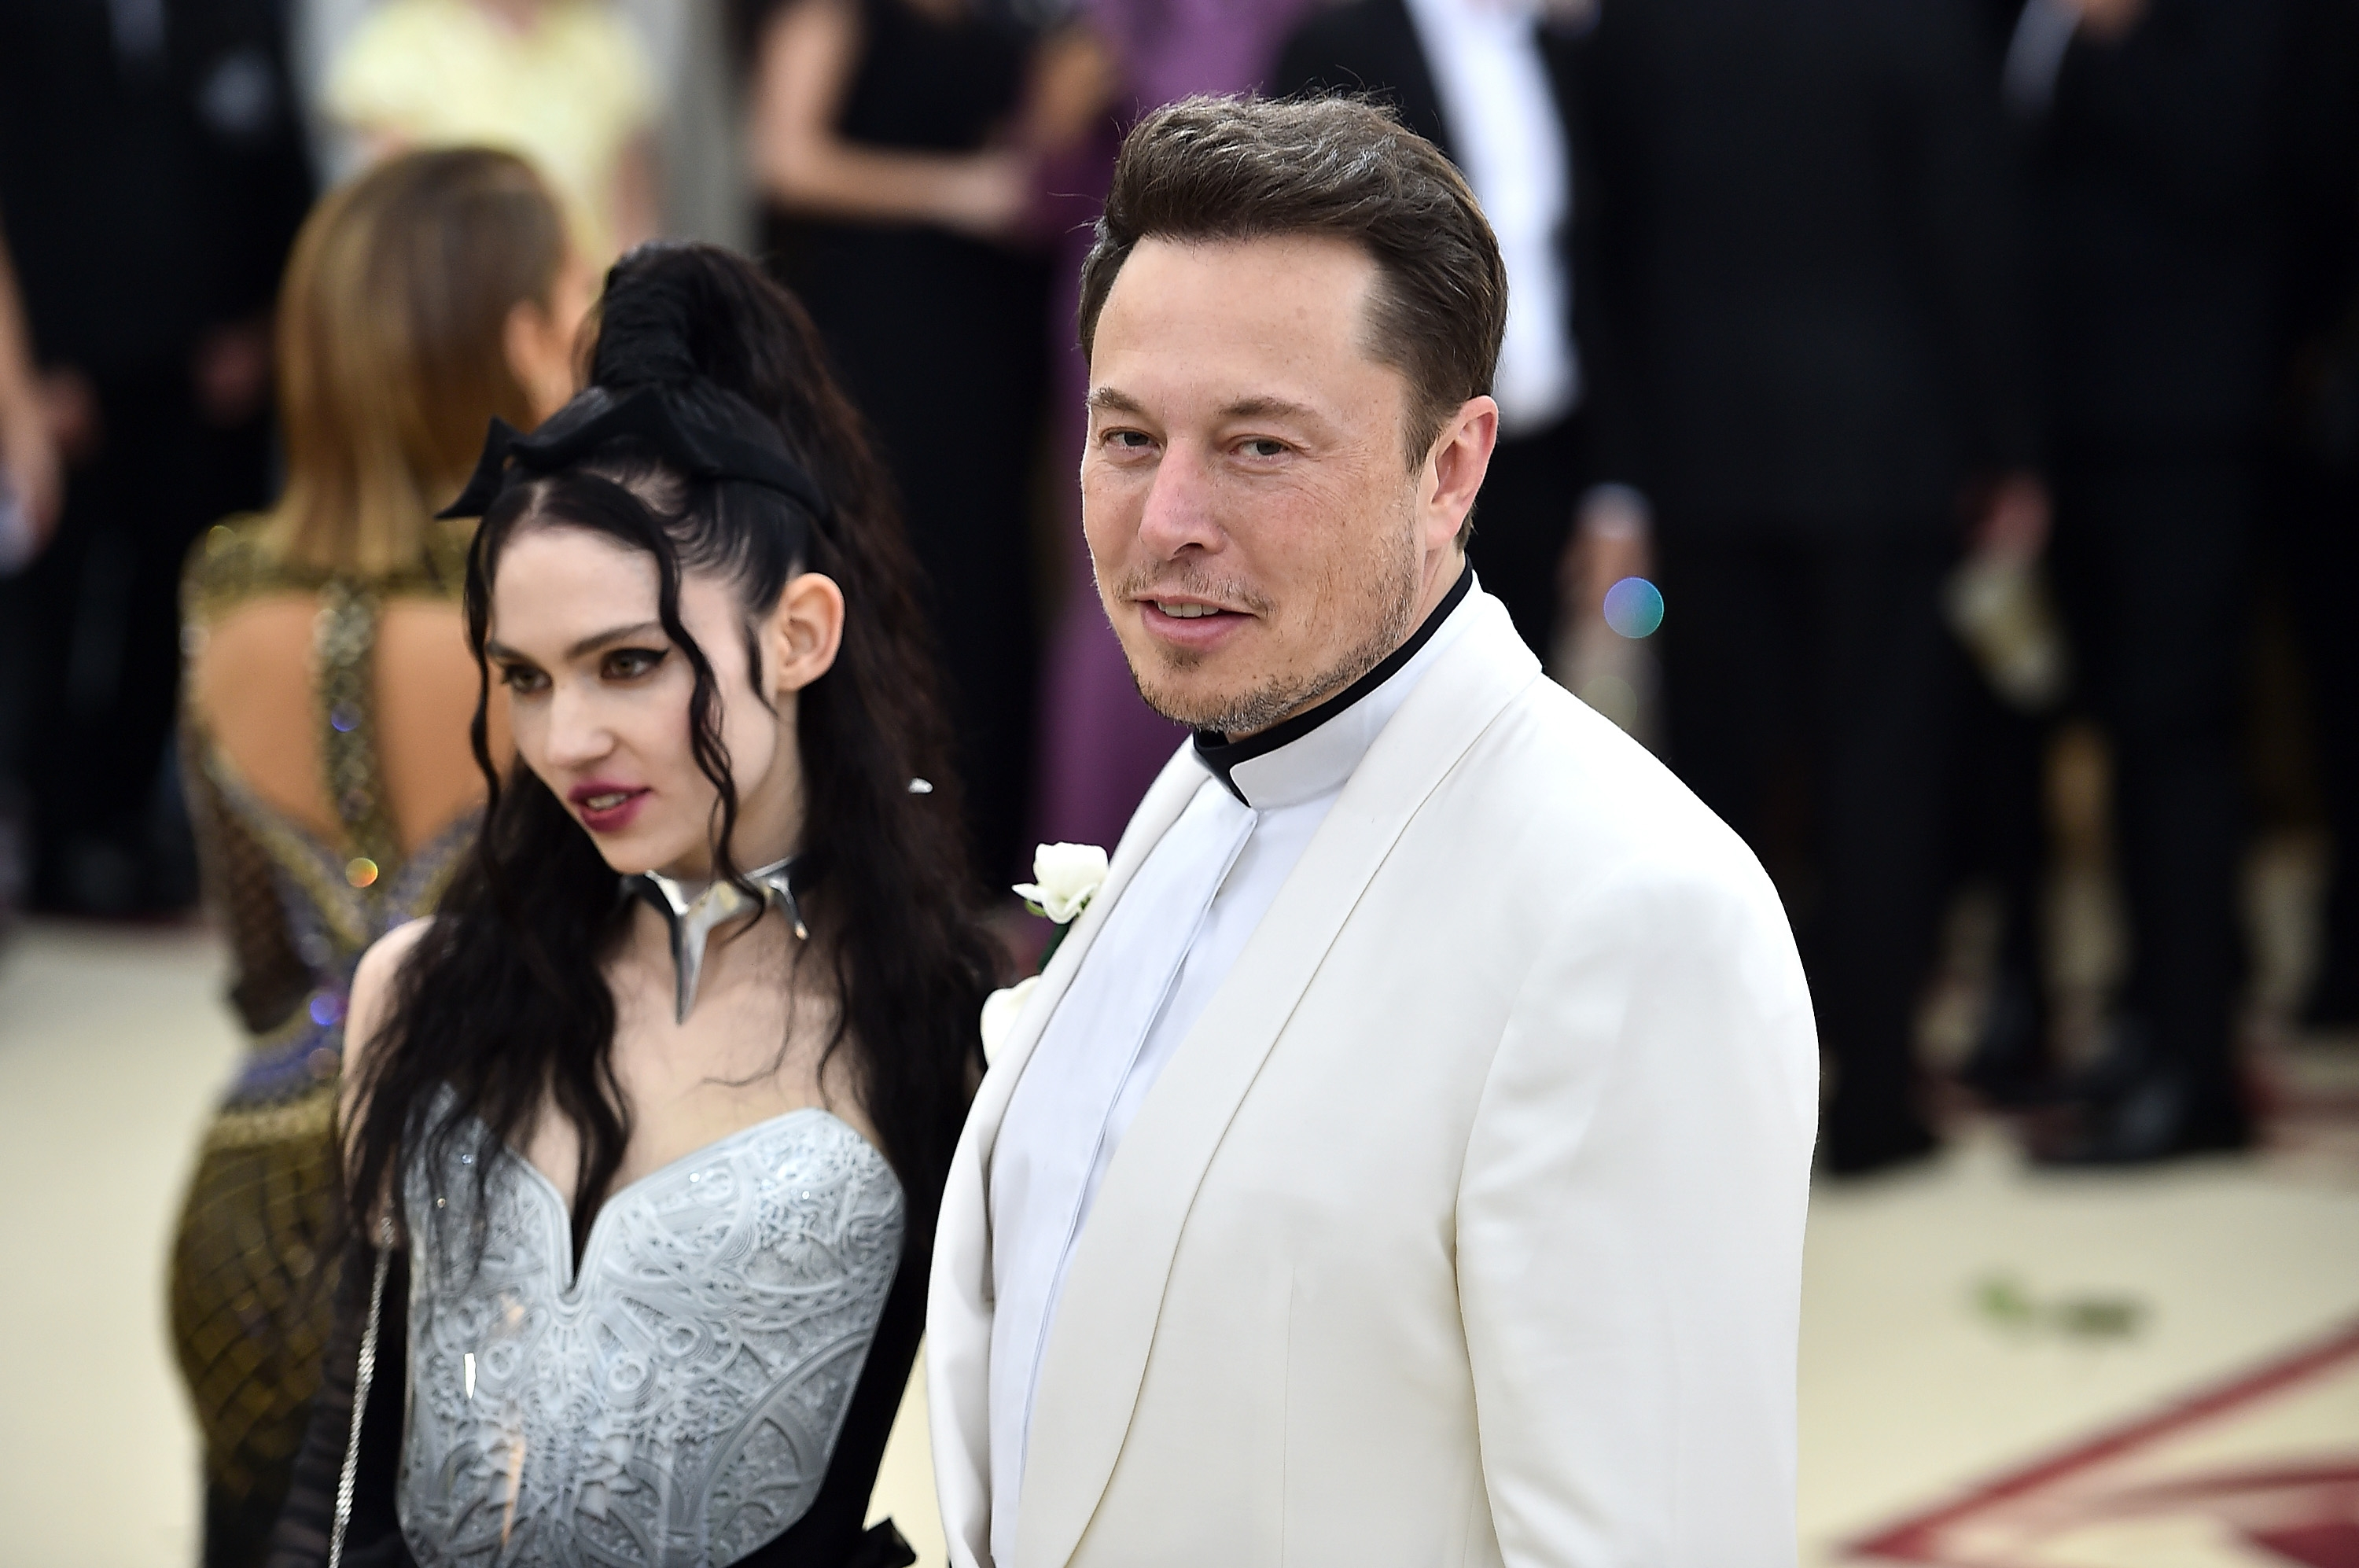 Entertainment: Elon Musk, 47, is seen with girlfriend Grimes